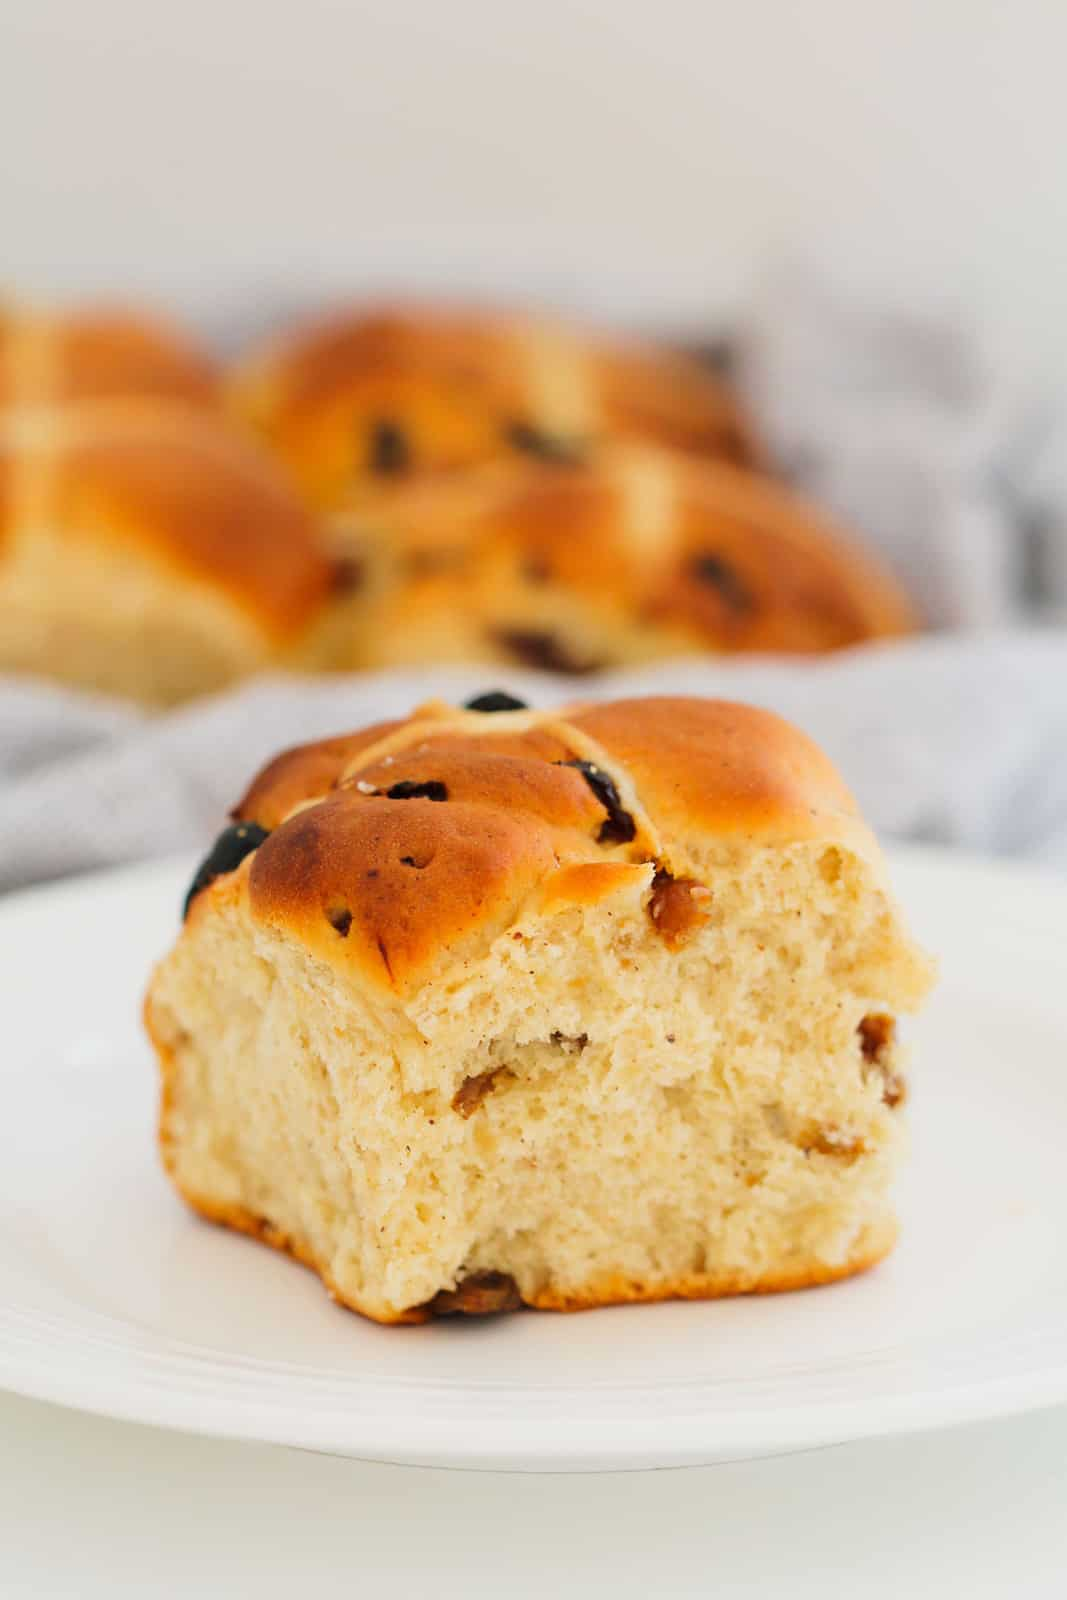 An Easter fruit bun on a plate with more buns in the background.